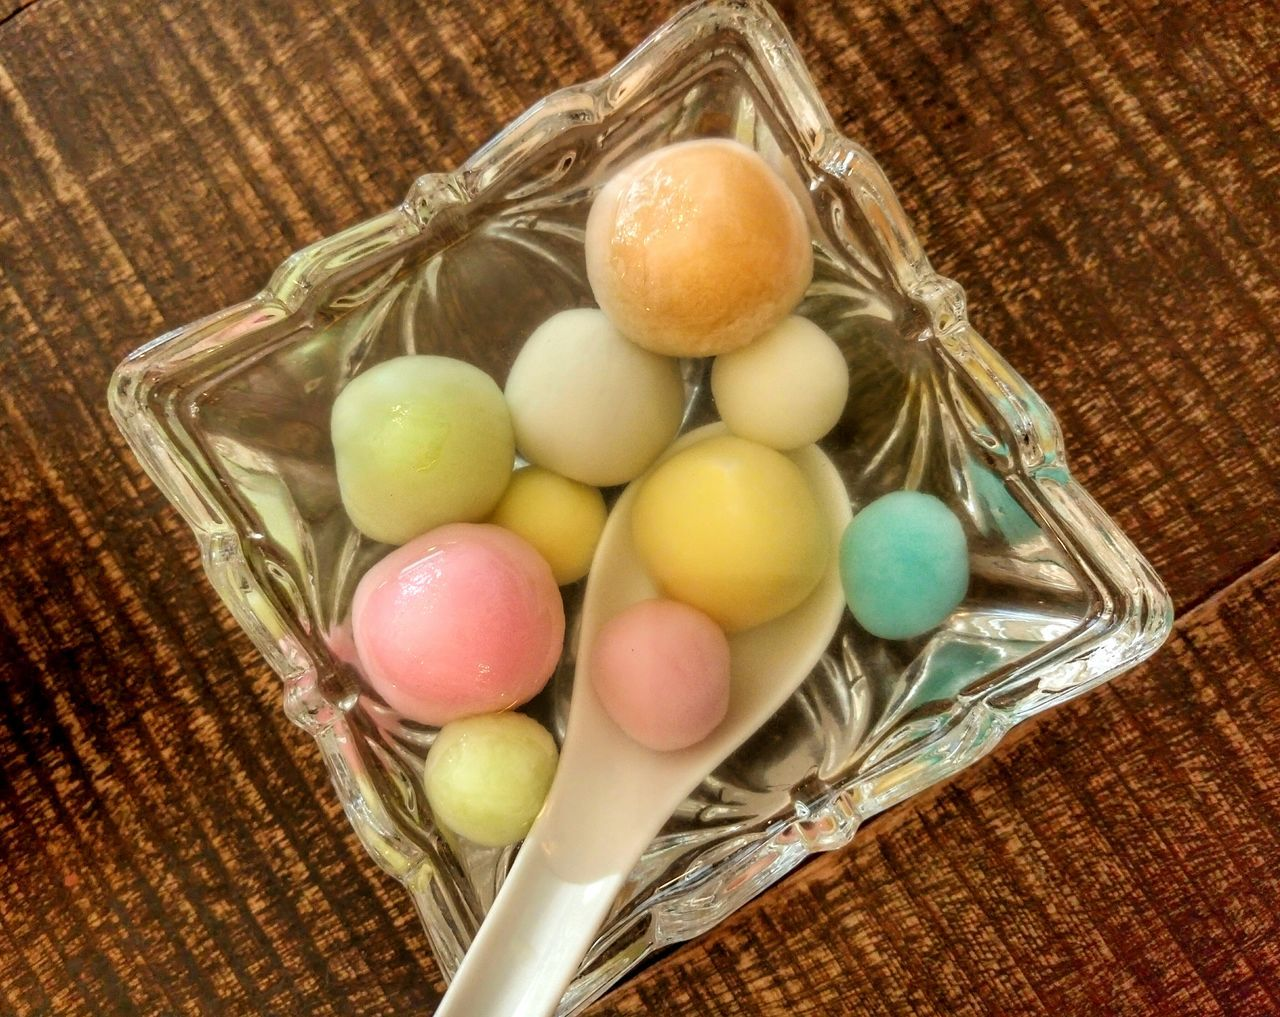 Tangyuan Winter Solstice Dessert Colorful Dongzhifestival Chinese Culture Reunion♥ Traditional Round Balls Ginger Infuse Syrup Togetherness Visual Feast